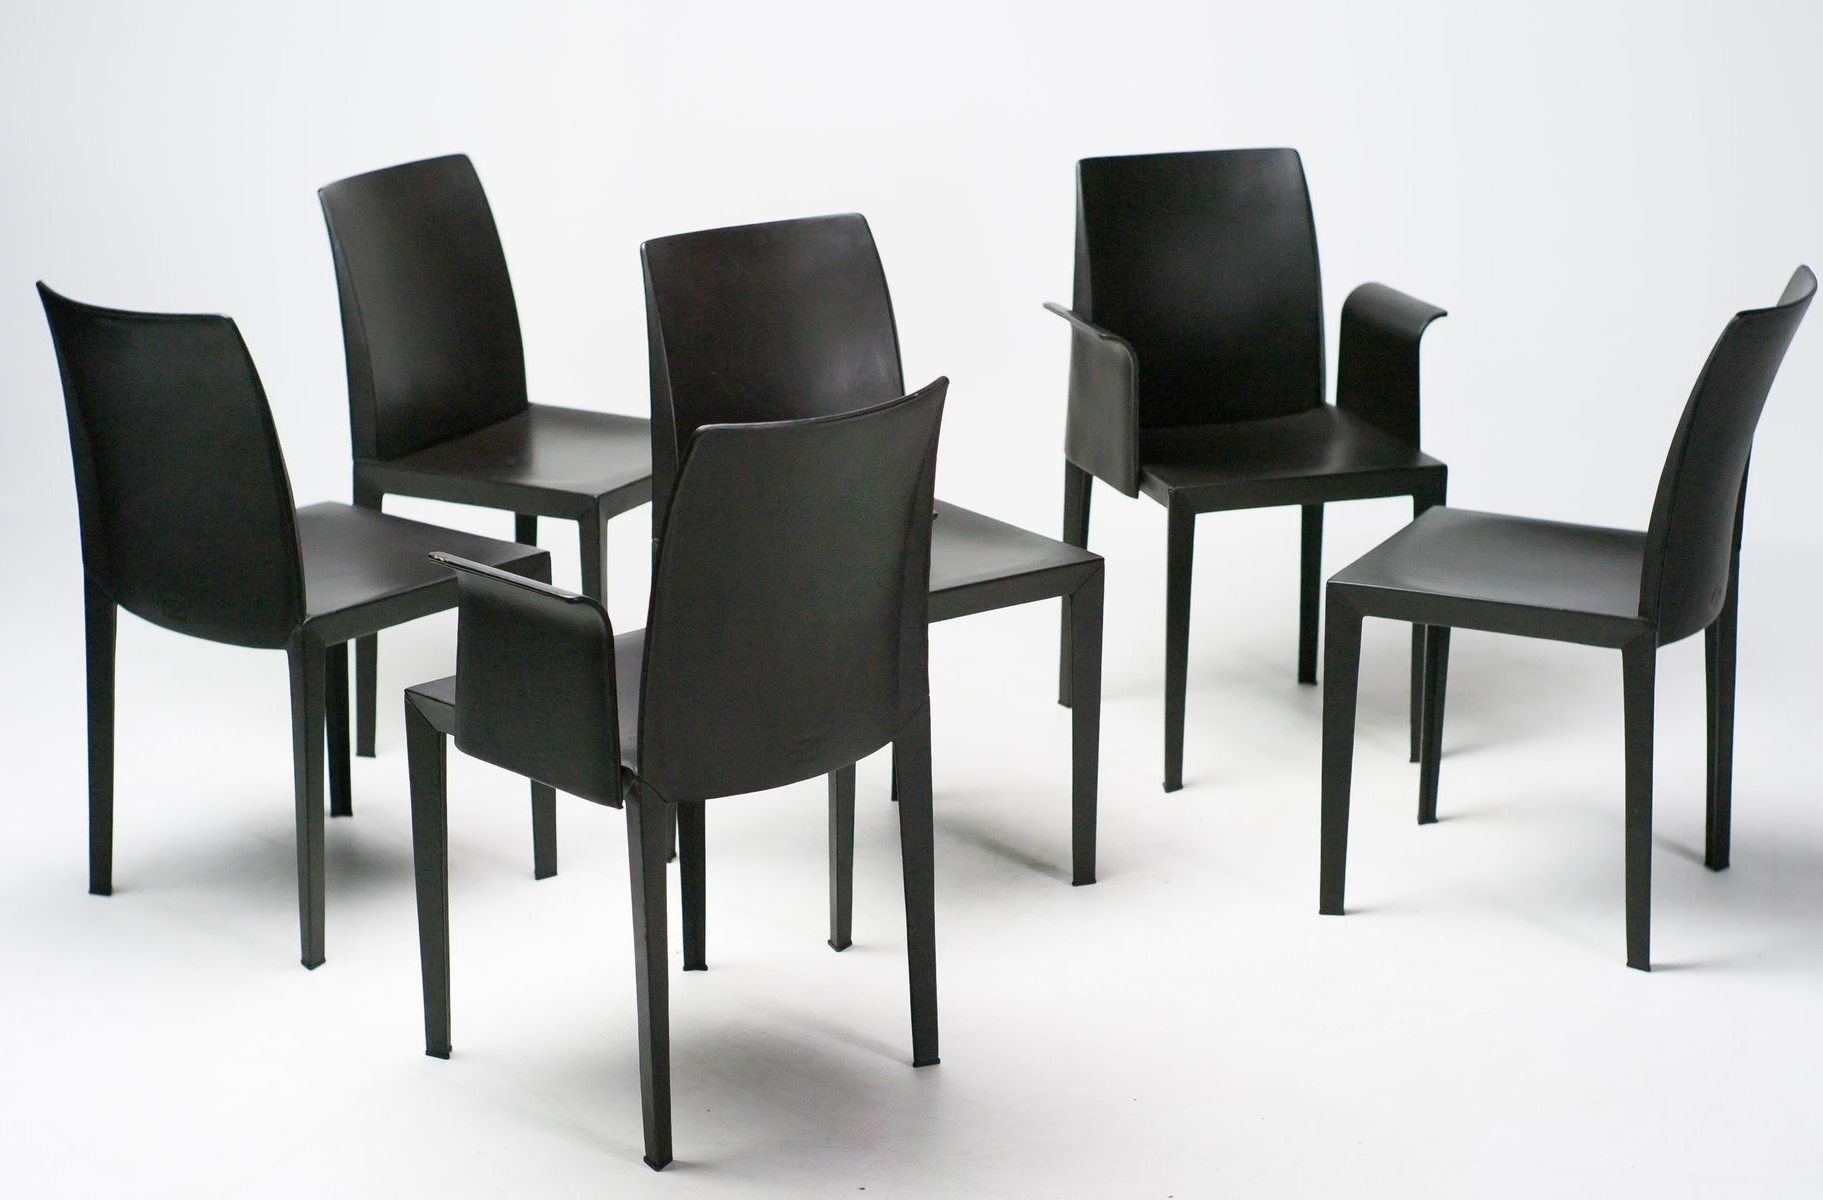 Trendy Lola Side Chairs Inside Lola Dining Chairsluigi Cerri For Poltrona Frau, Set Of 6 For (View 17 of 20)